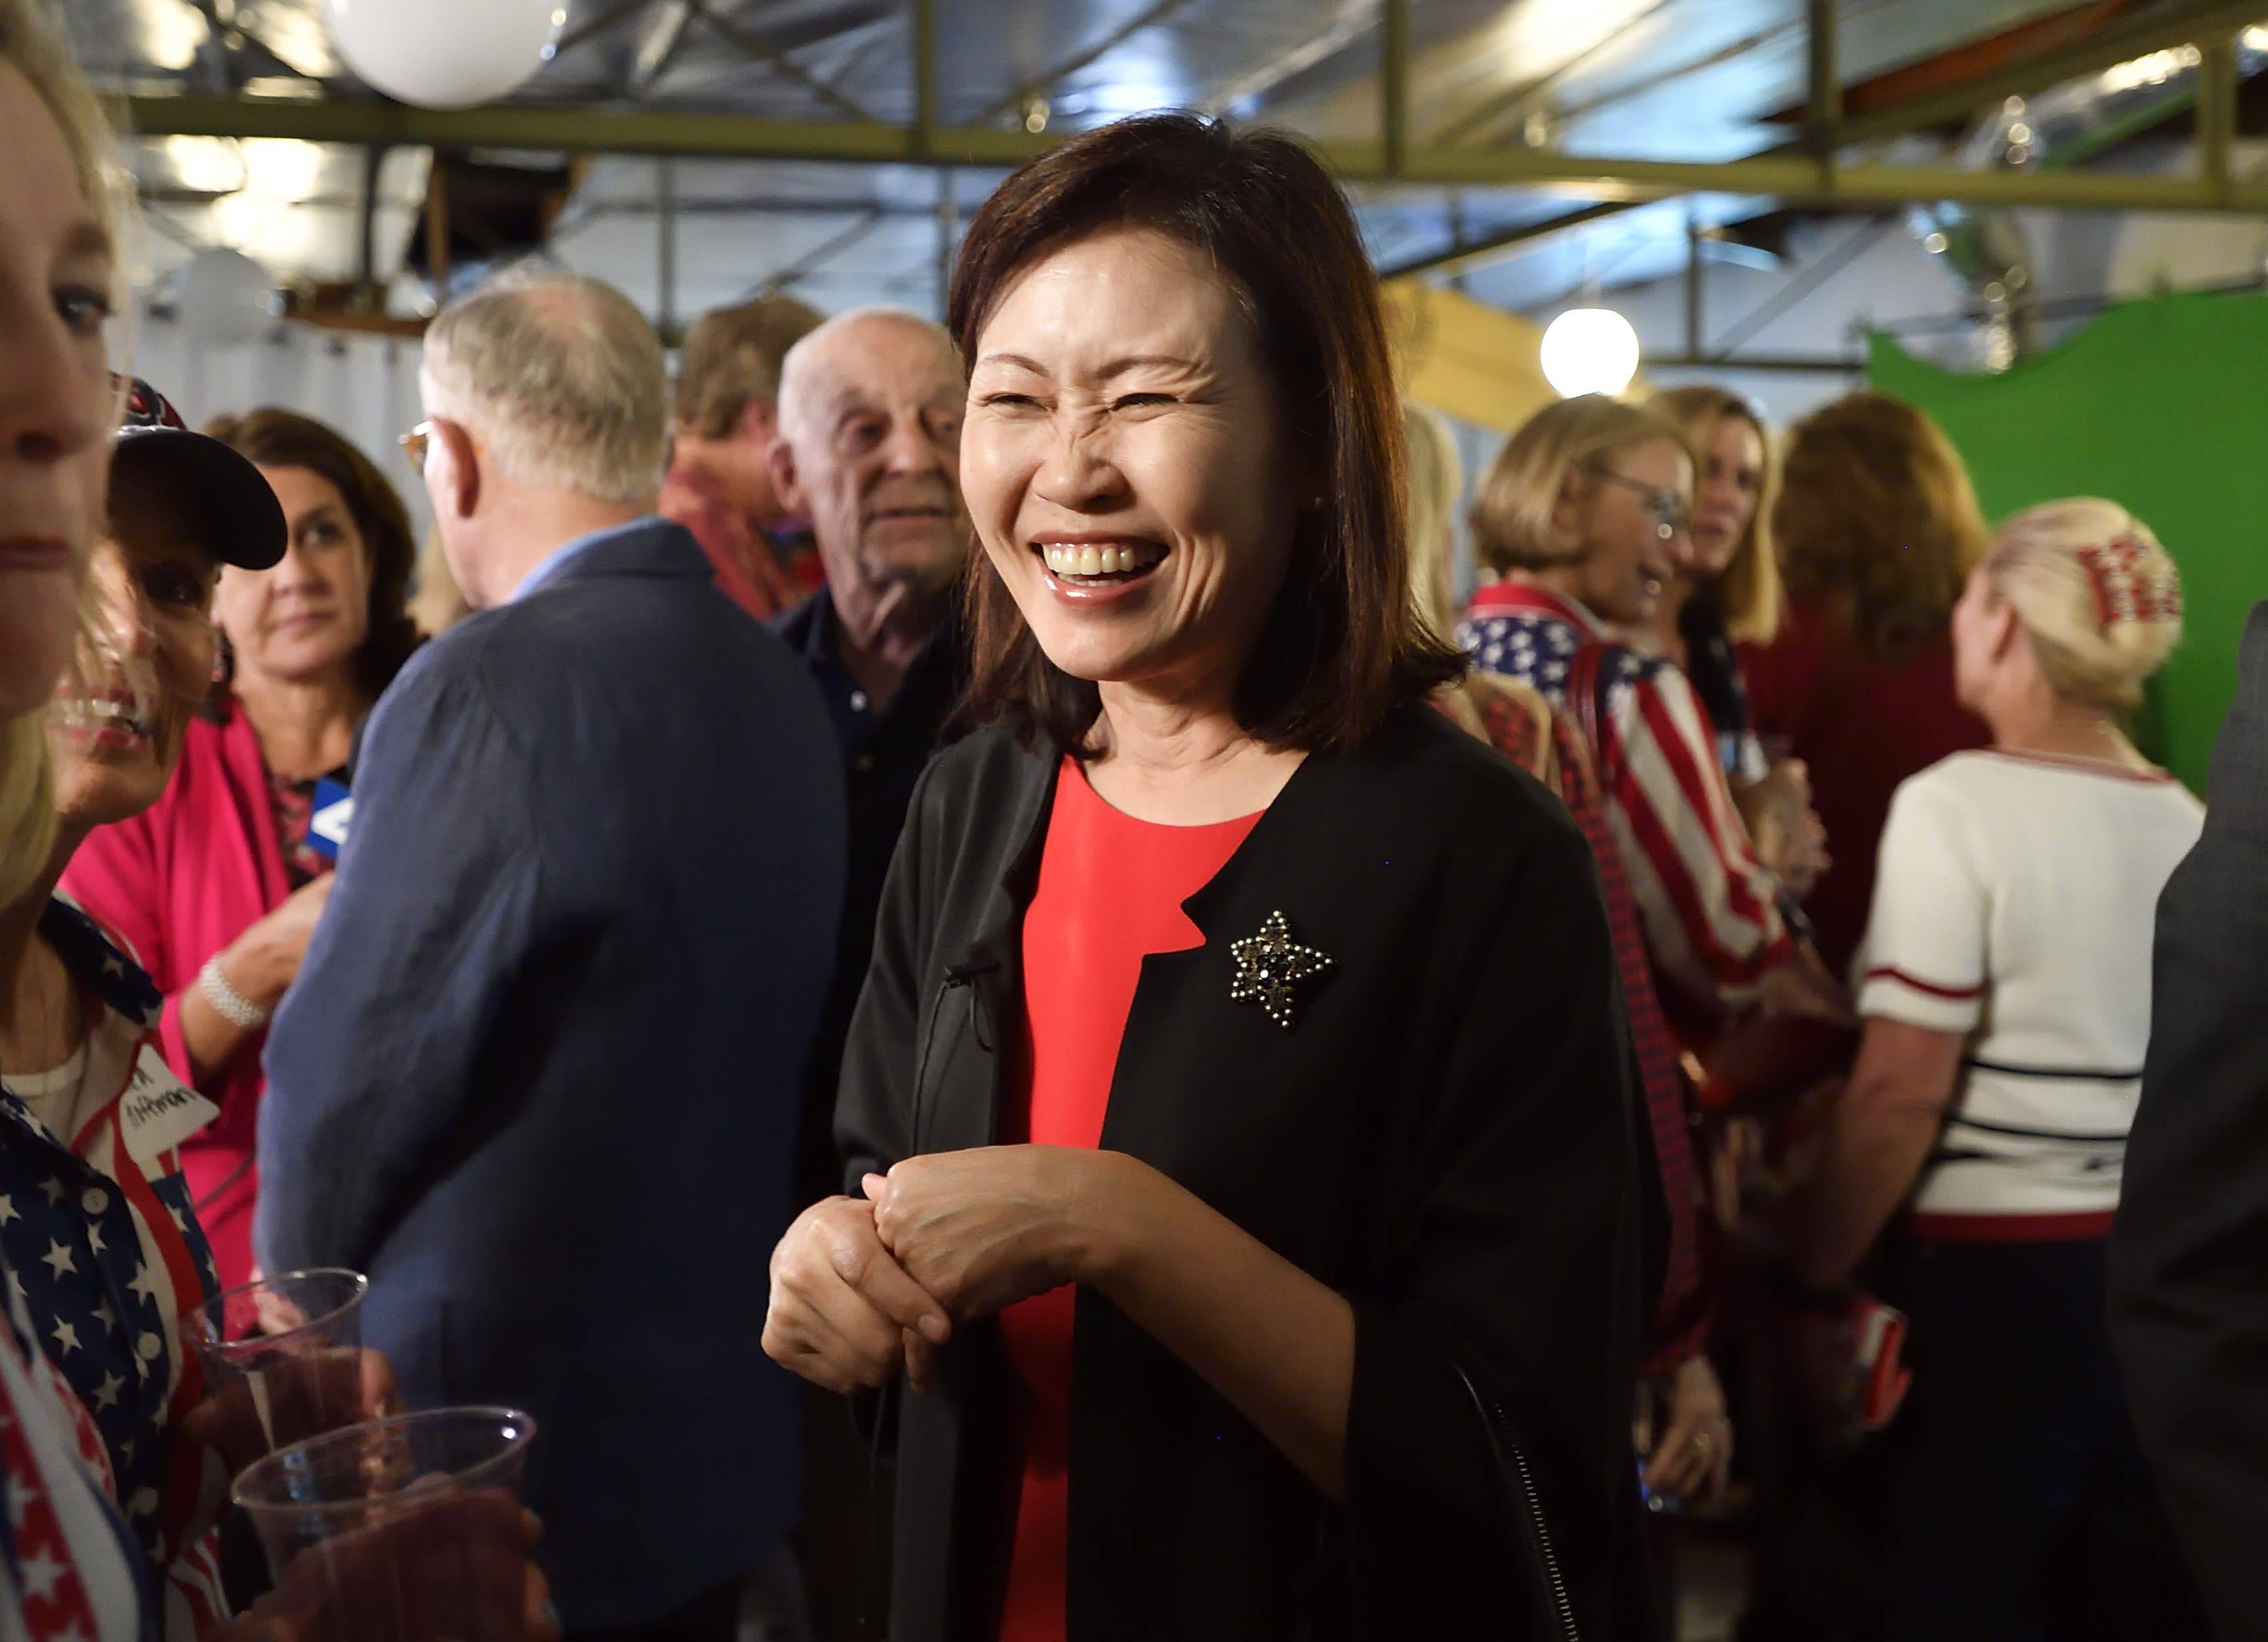 FILE - In this Tuesday, June 5, 2018, file photo Orange County Supervisor Michelle Steel smiles as she visits Rep. Dana Rohrabacher's election night party in Costa Mesa, Calif. Republican Steel, who heads the Orange County Board of Supervisors, has seized on the fight over affirmative action and the new labor law known as AB5 in her bid to oust first-term Democratic Rep. Harley Rouda. (Jeff Gritchen/The Orange County Register via AP, File)